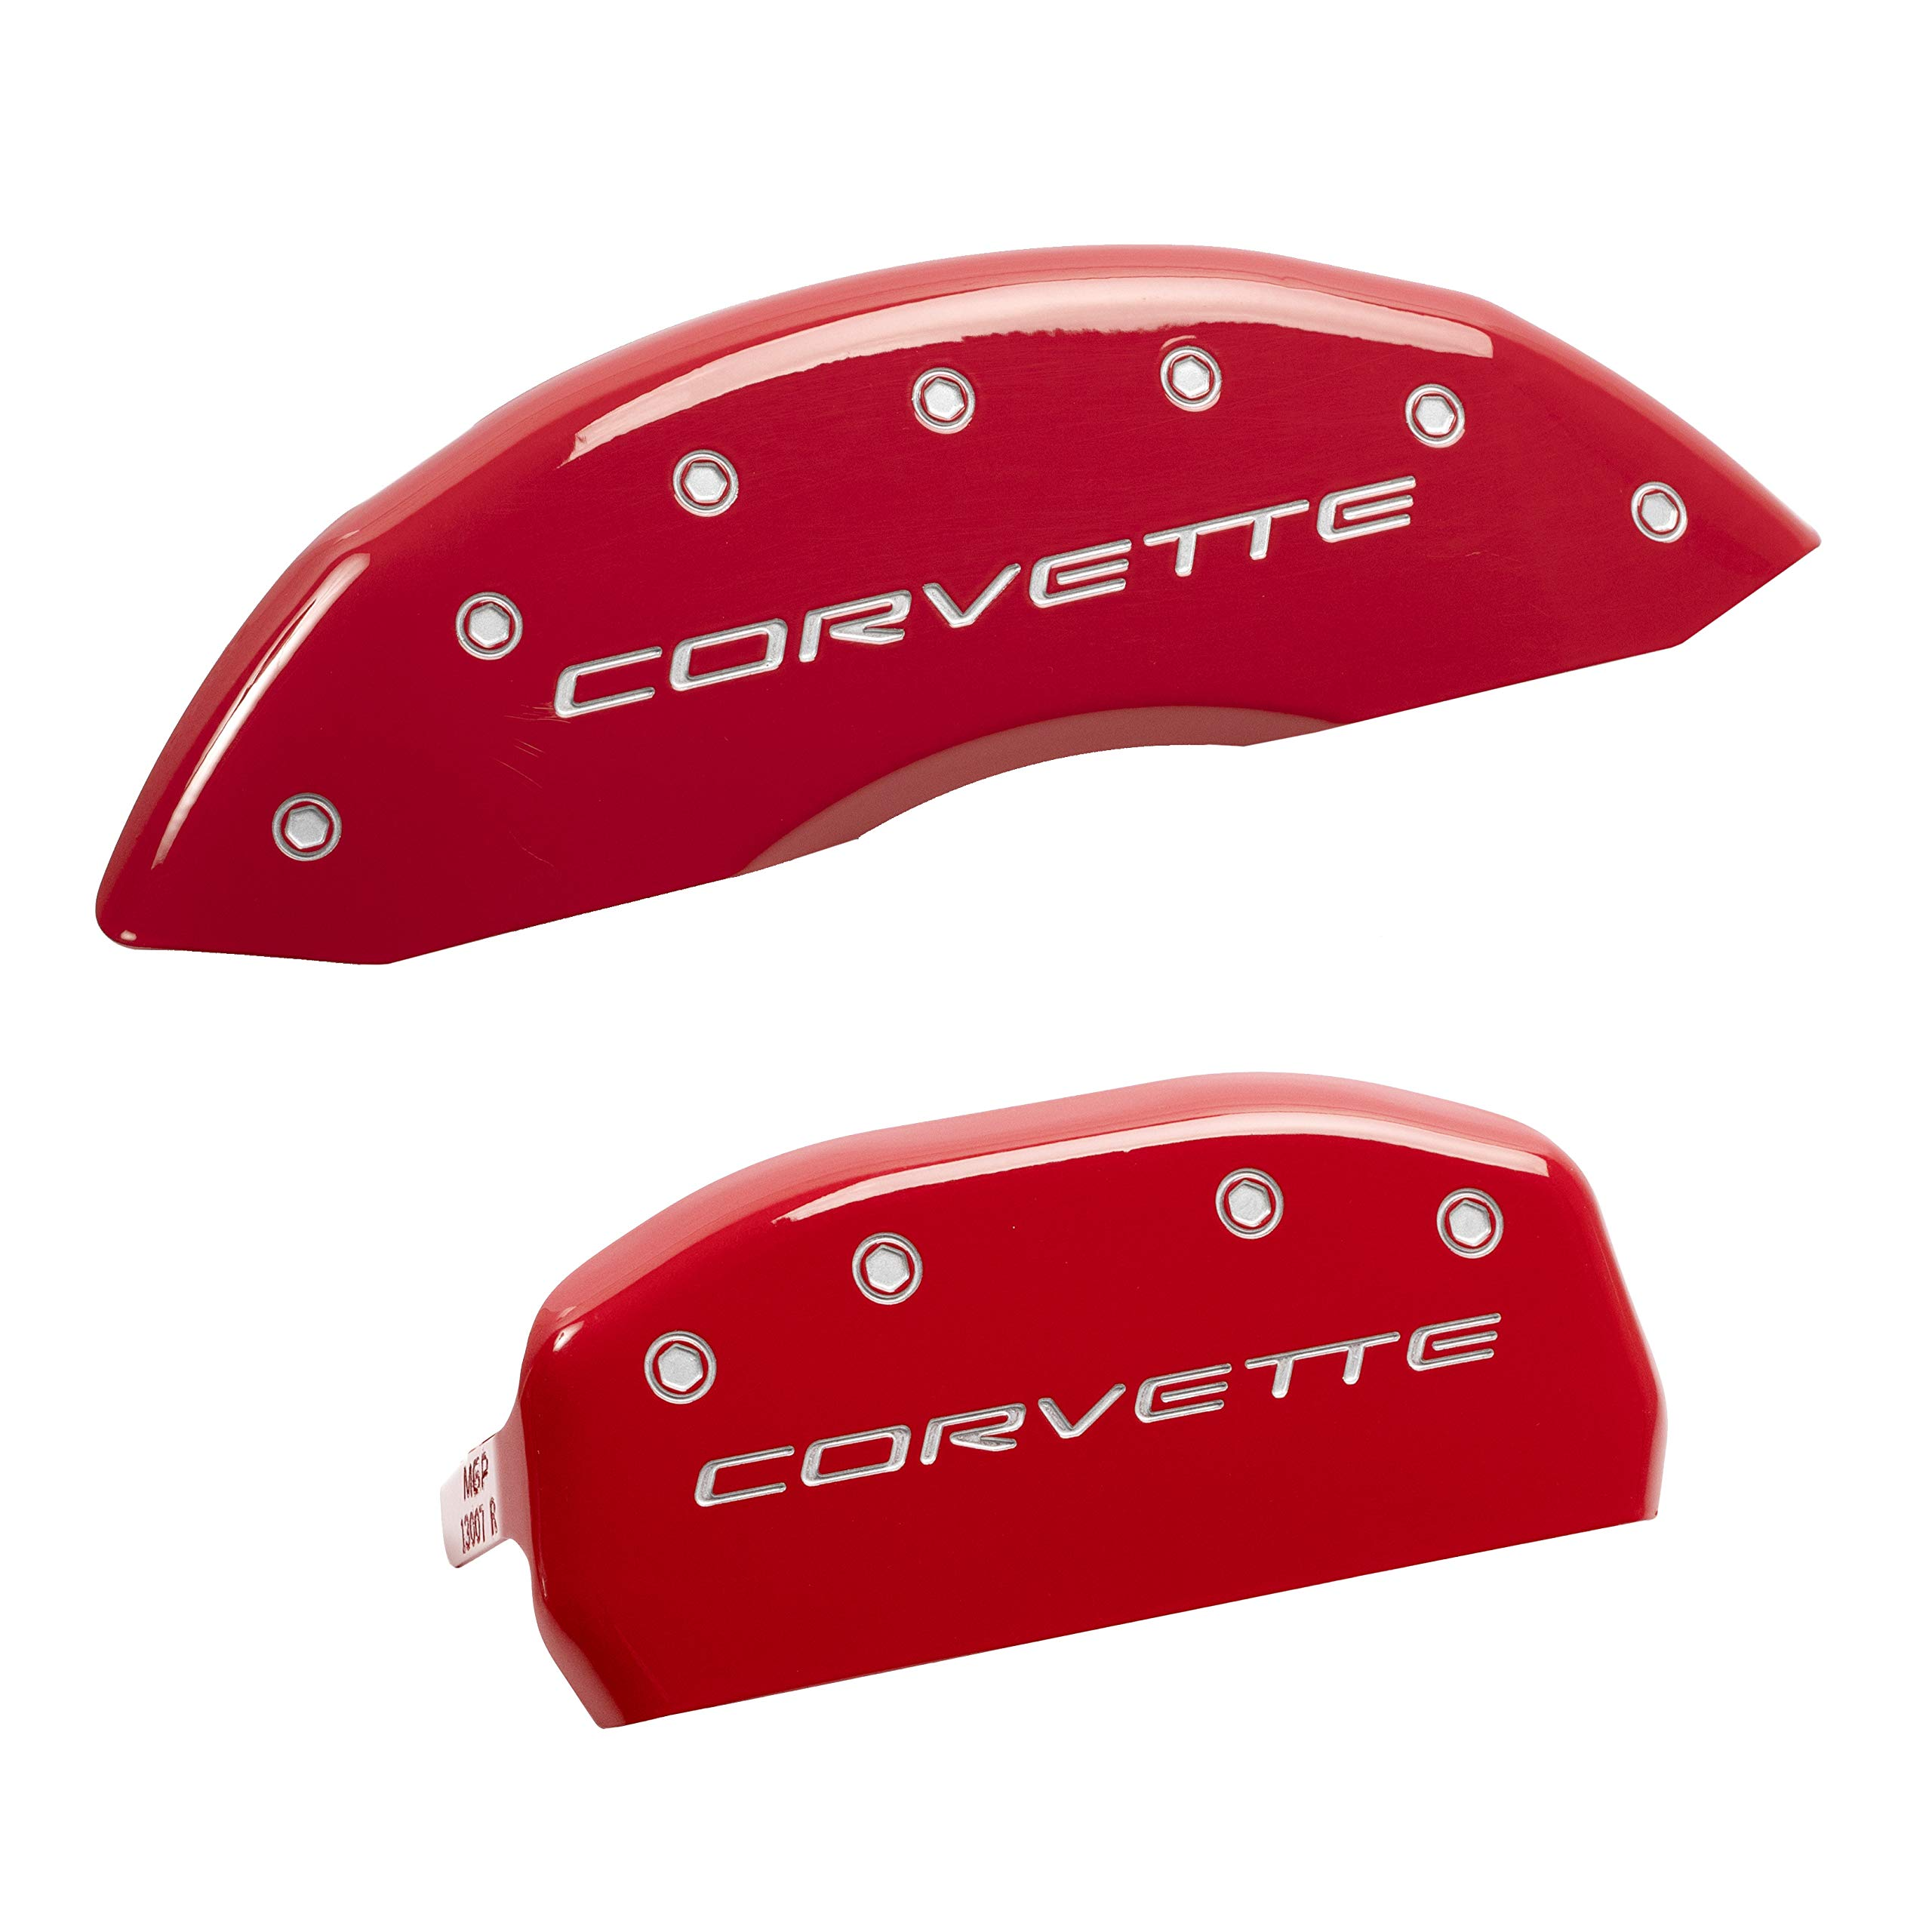 MGP Caliper Covers 13007SCV5RD Corvette C5 Logo Type Caliper Cover with Red Powder Coat Finish and Silver Characters, (Set of 4)